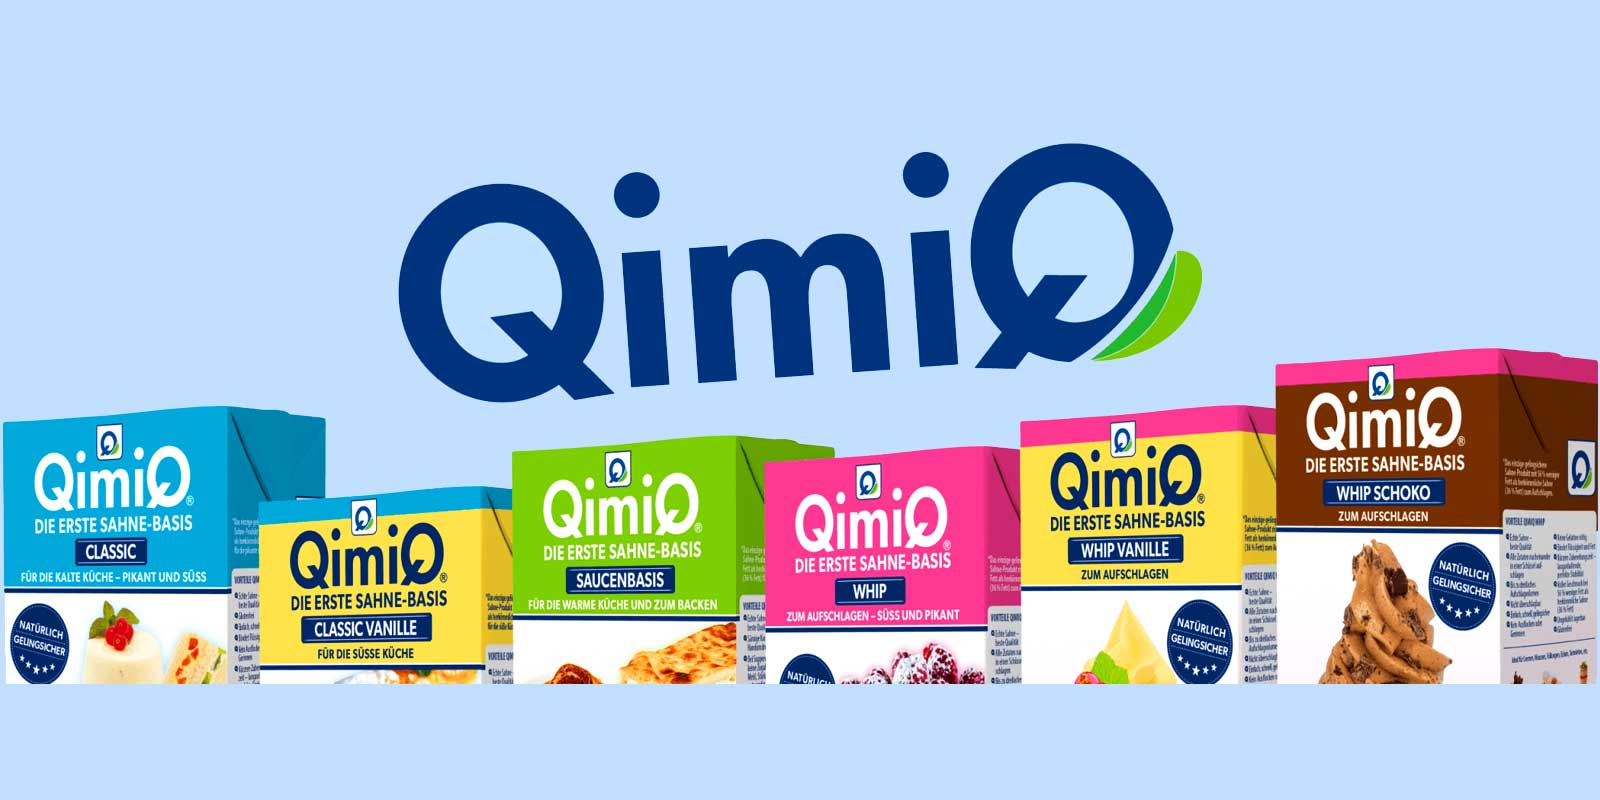 QimiQ - Products QimiQ is the first light cream-based with only 15% fat. It is tasteless and therefore is also suitable for confectioneries, savouries, such as hot and cold dishes. QimiQ is a 100% natural product.